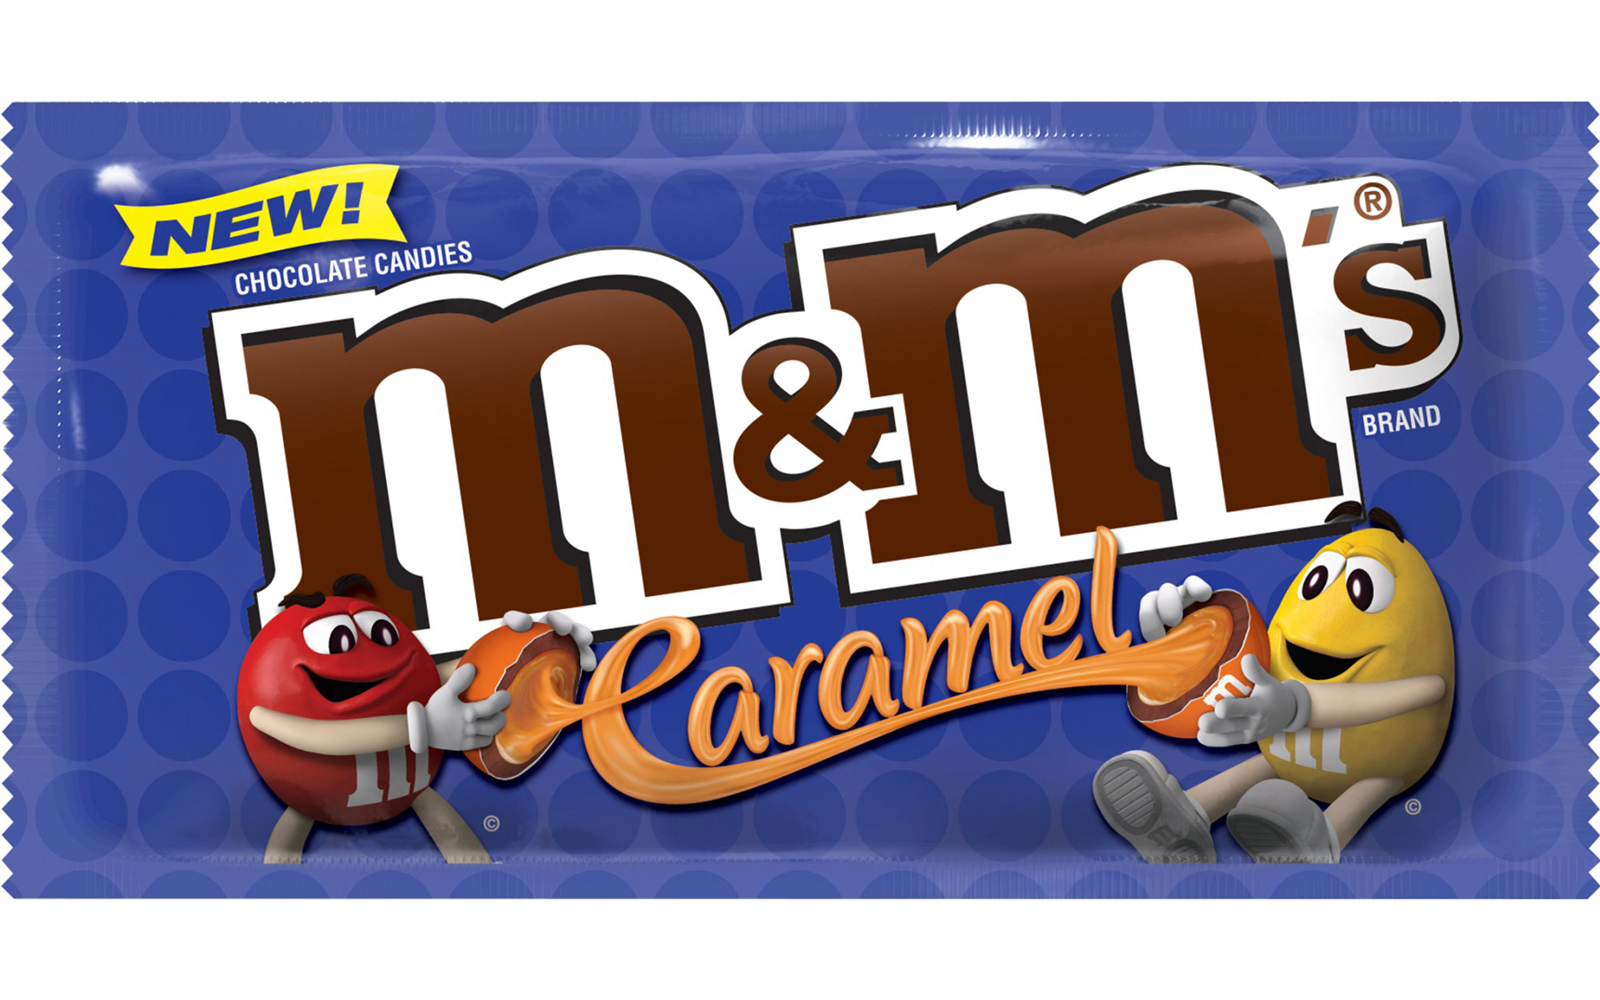 Caramel M&M's Are Coming to a Store Near You